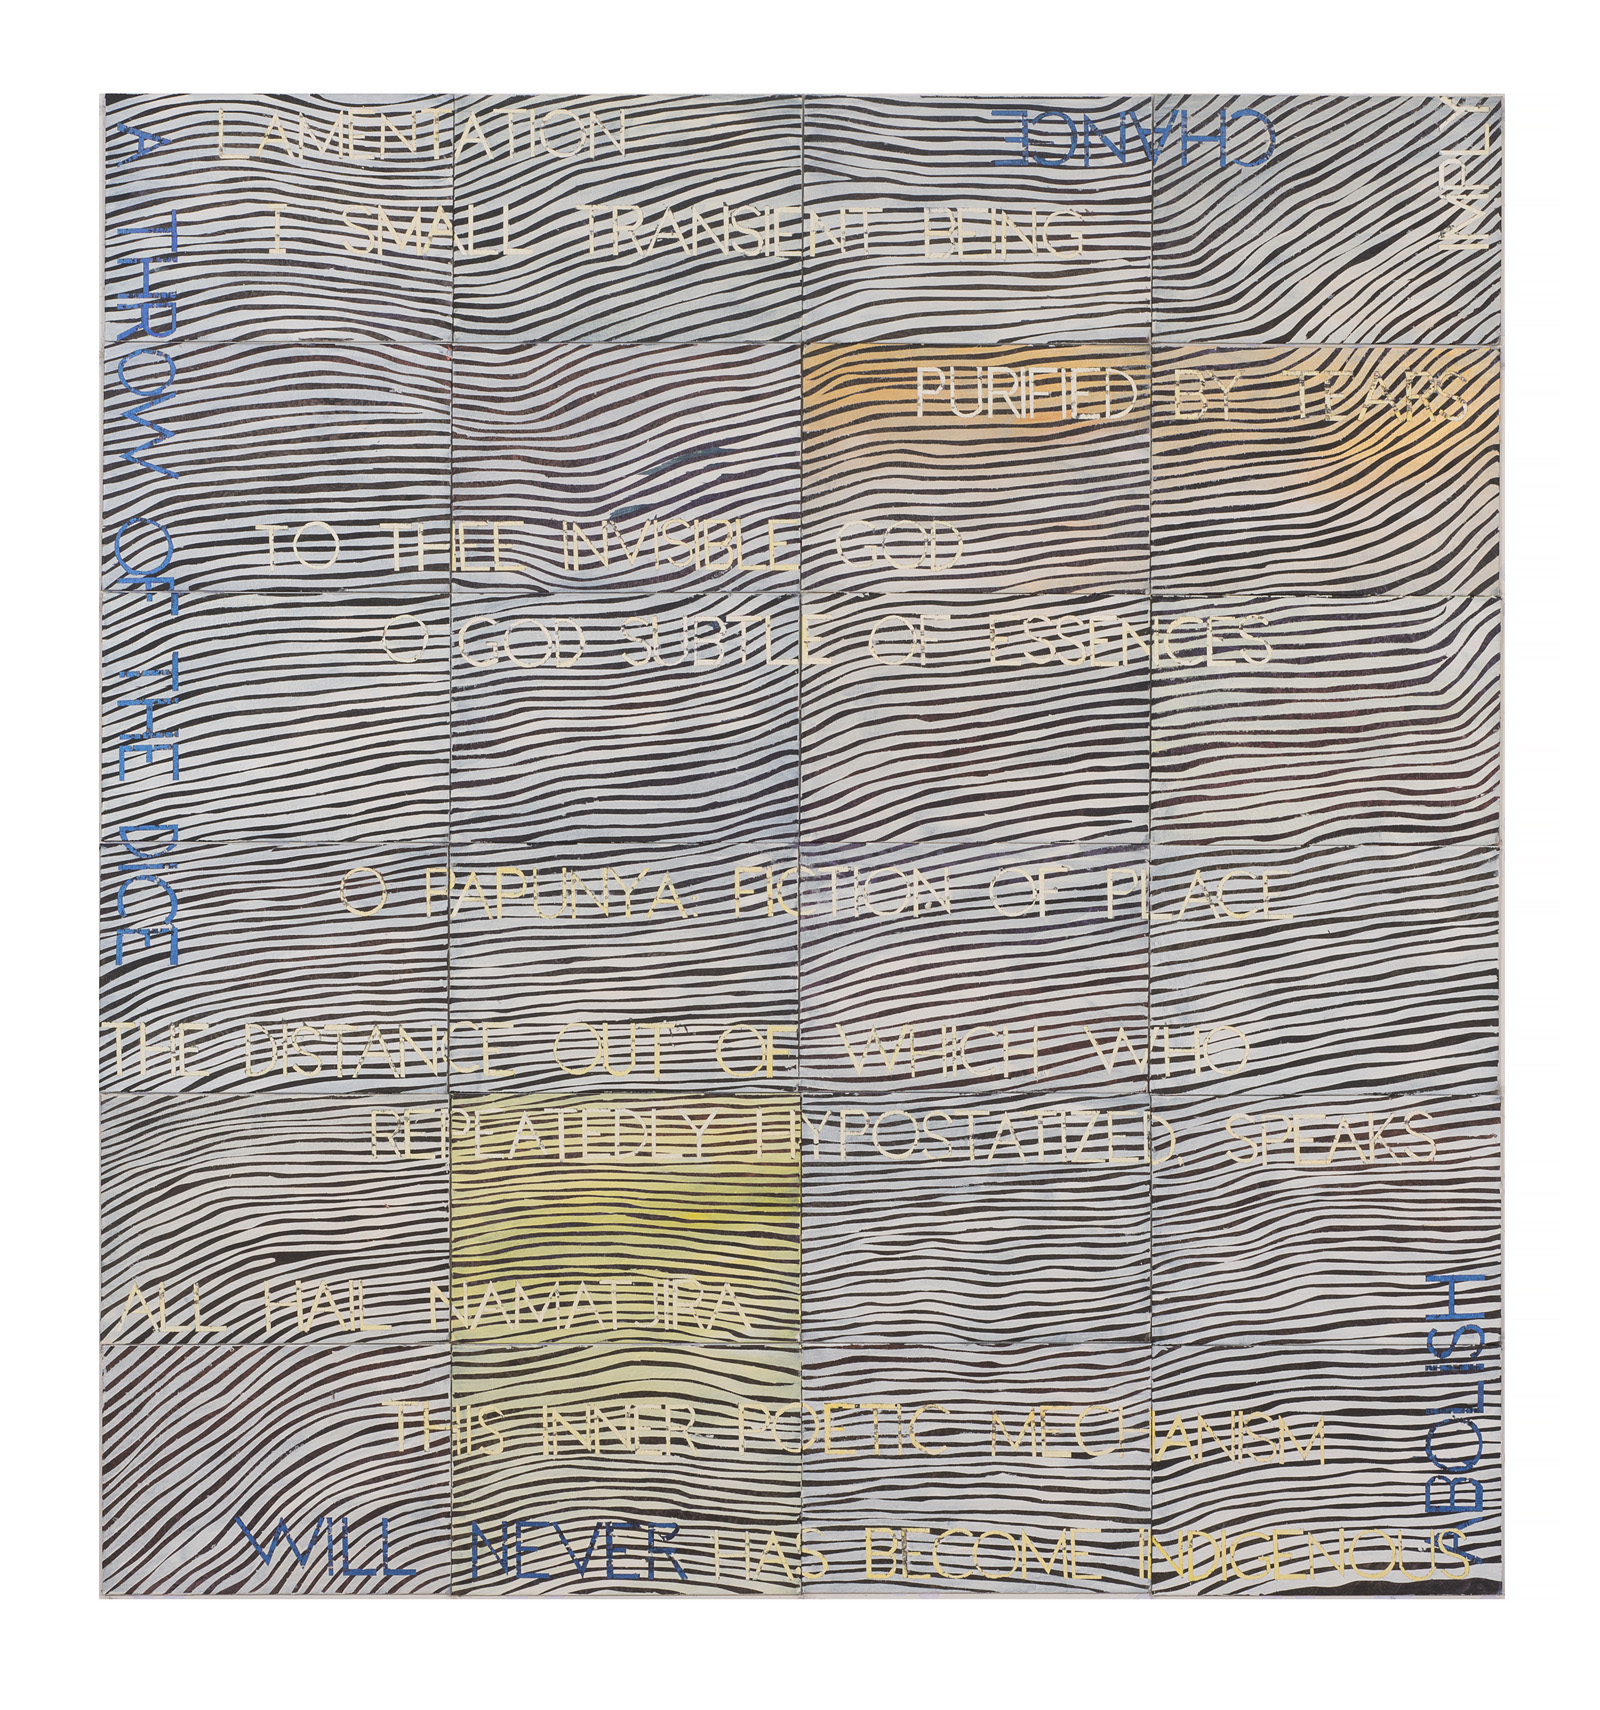 IMANTS TILLERS  Lamentation  2018 synthetic polymer paint, gouache on 24 canvas boards nos. 108071-108094 152.4 x 142.24 cm